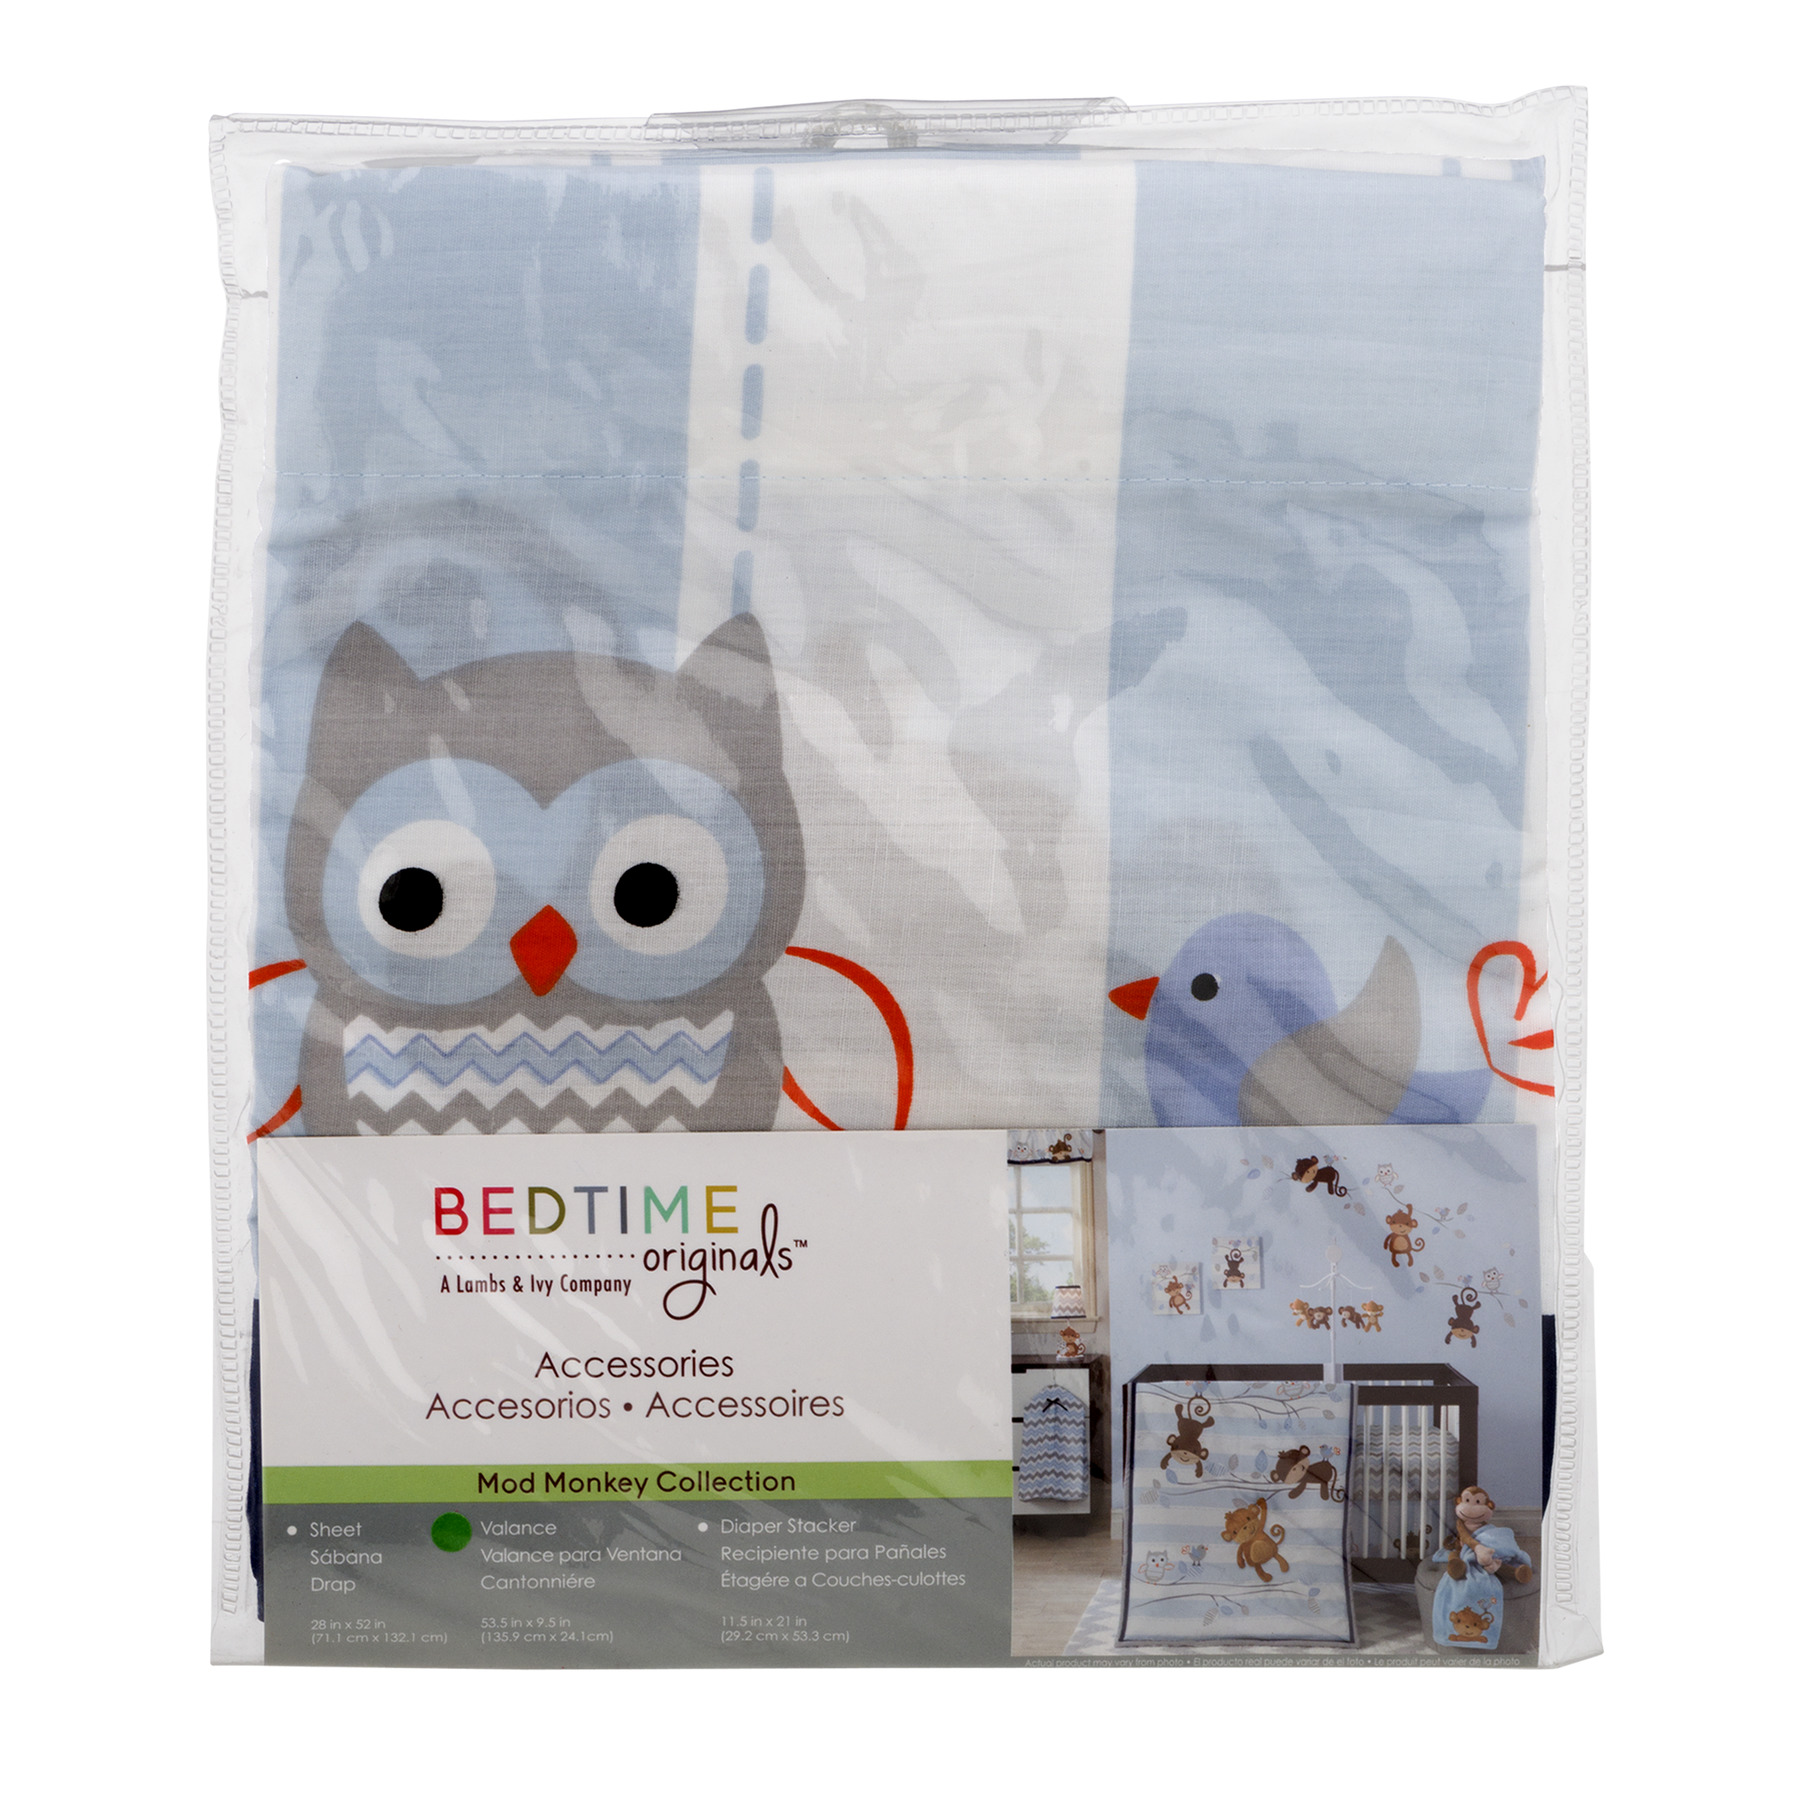 Bedtime Originals Valance, Mod Monkey Collection, 1.0 CT